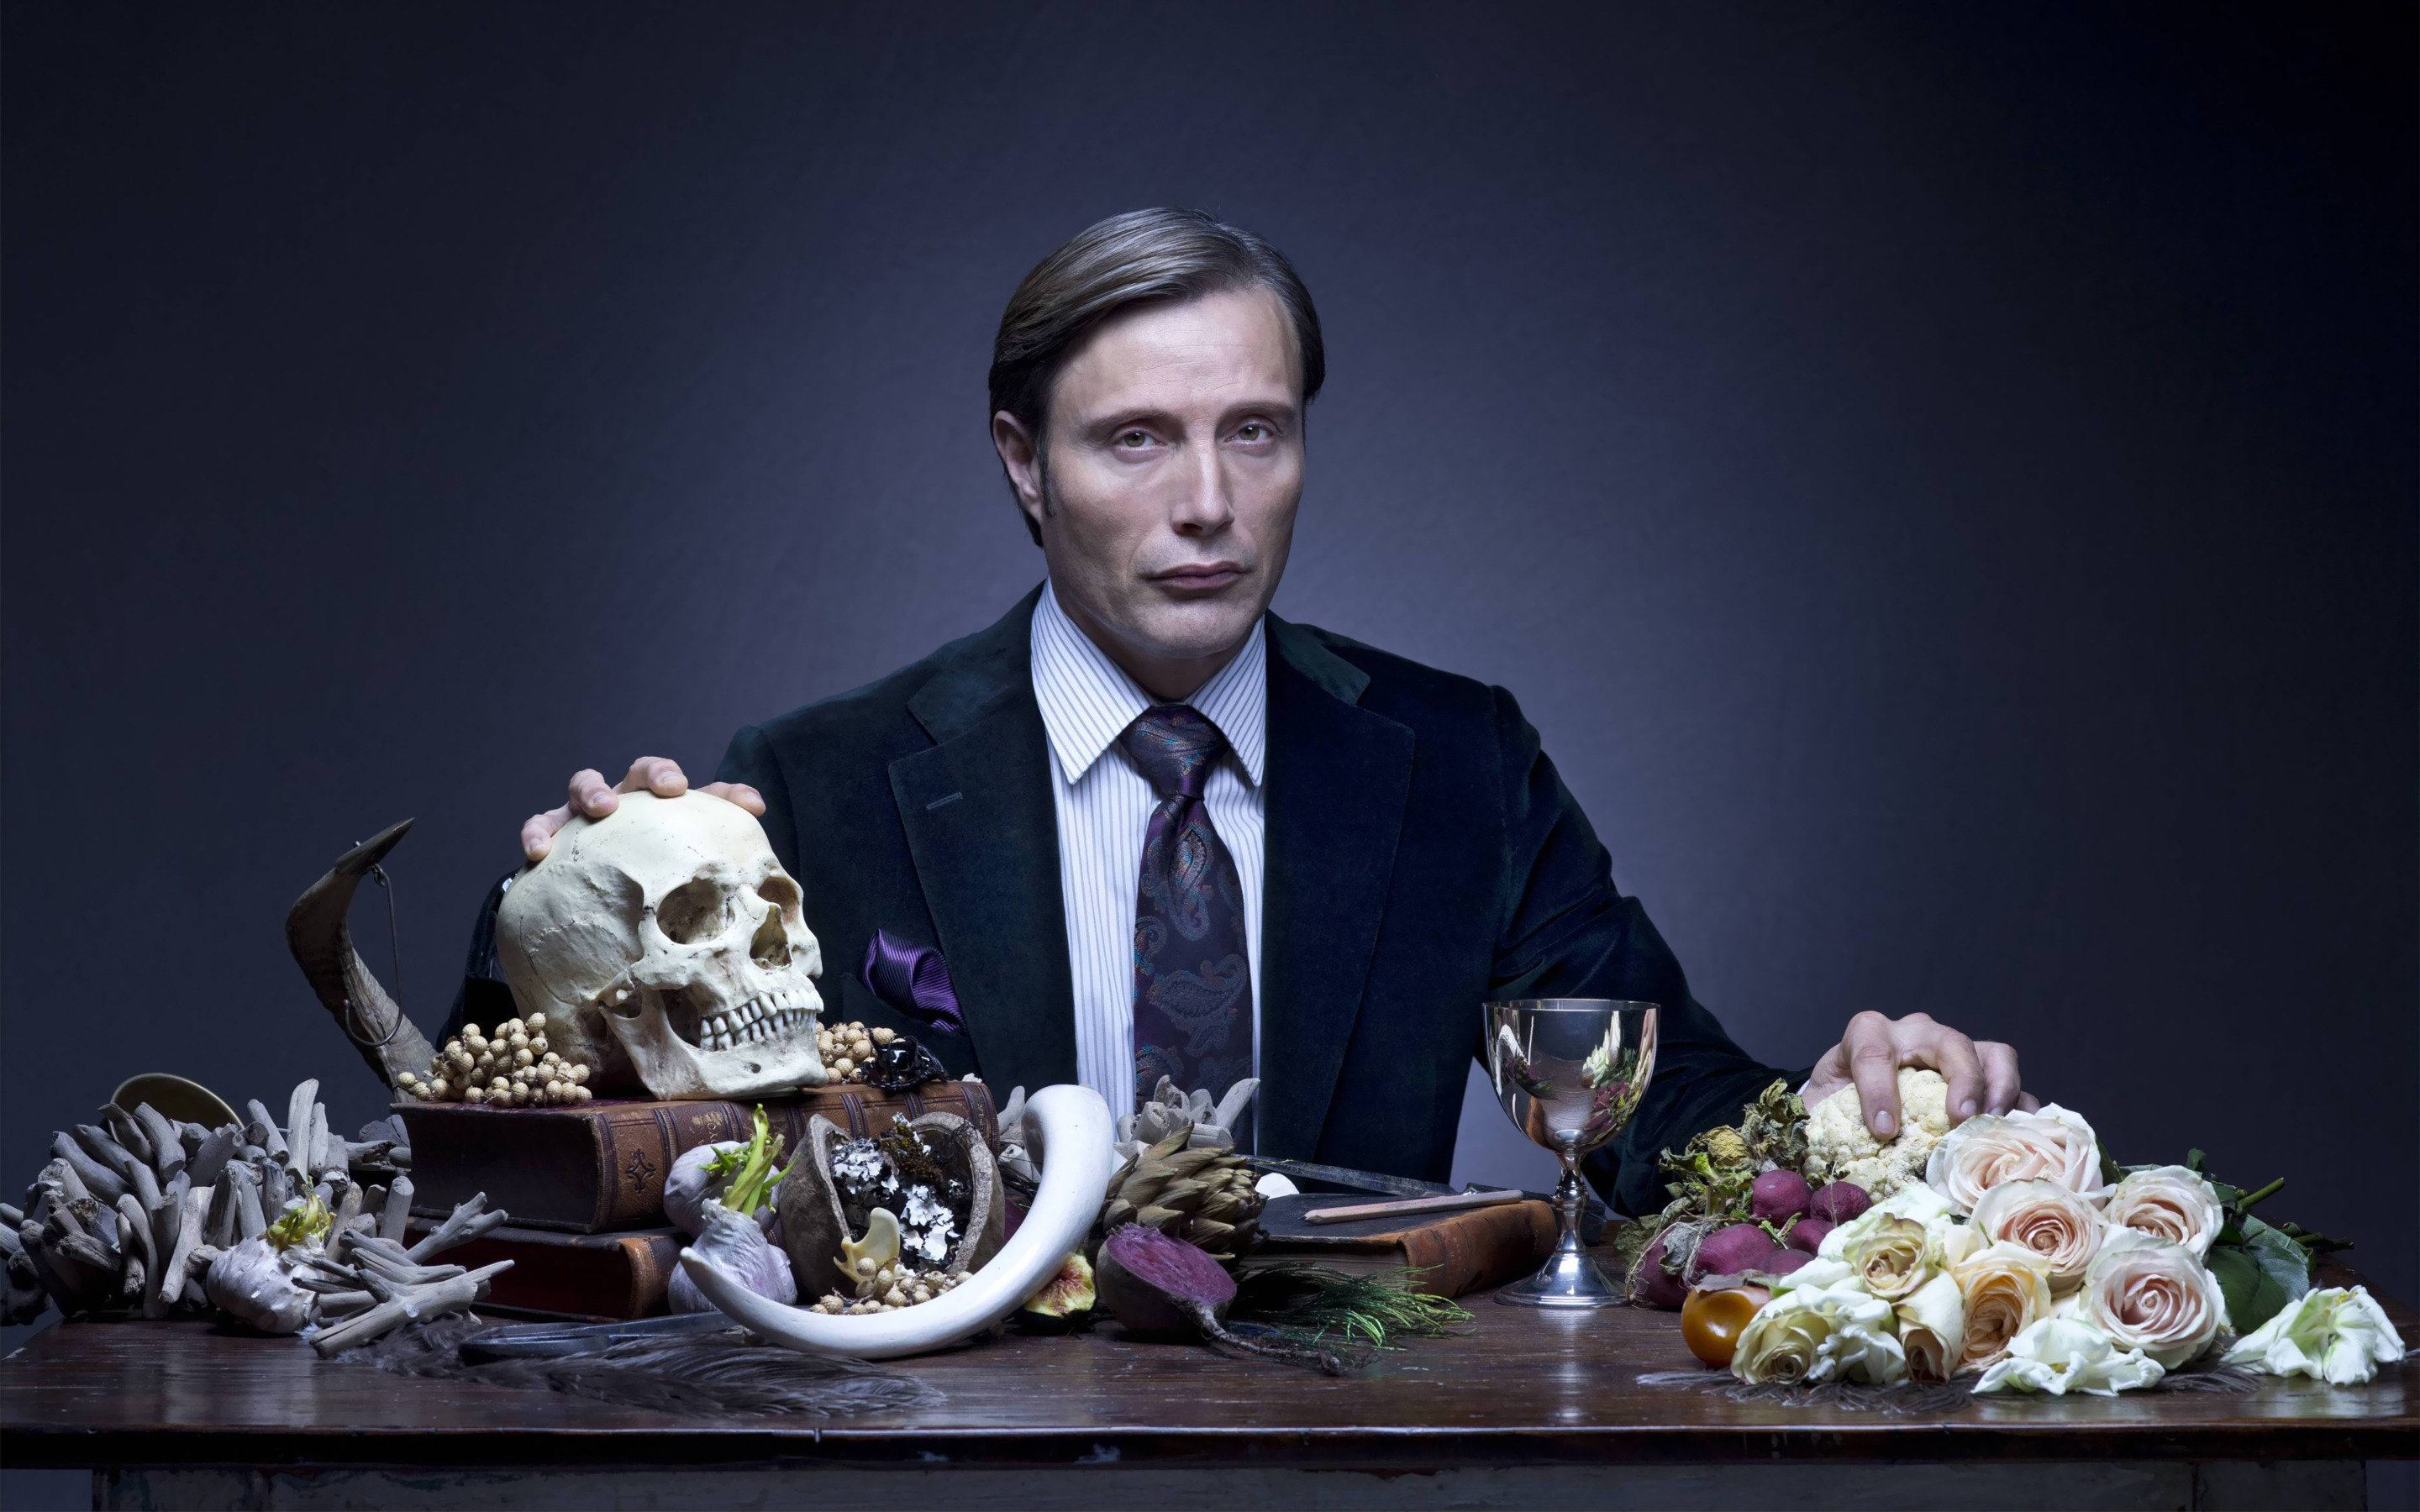 Il libro di ricette di Hannibal the Cannibal